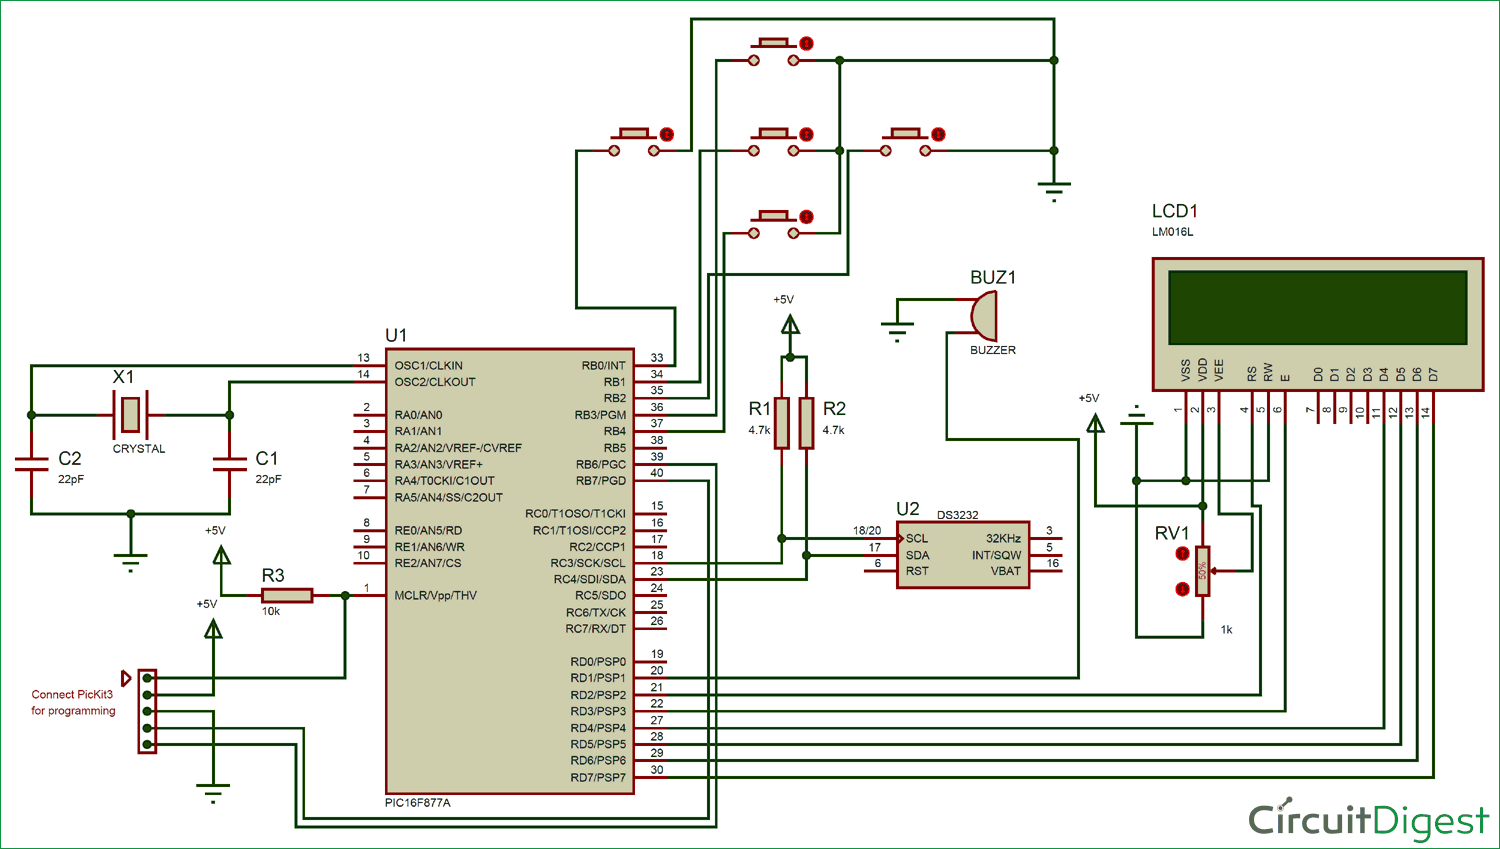 Digital Alarm Clock Circuit Diagram Using Pic Microcontroller Pickit 3